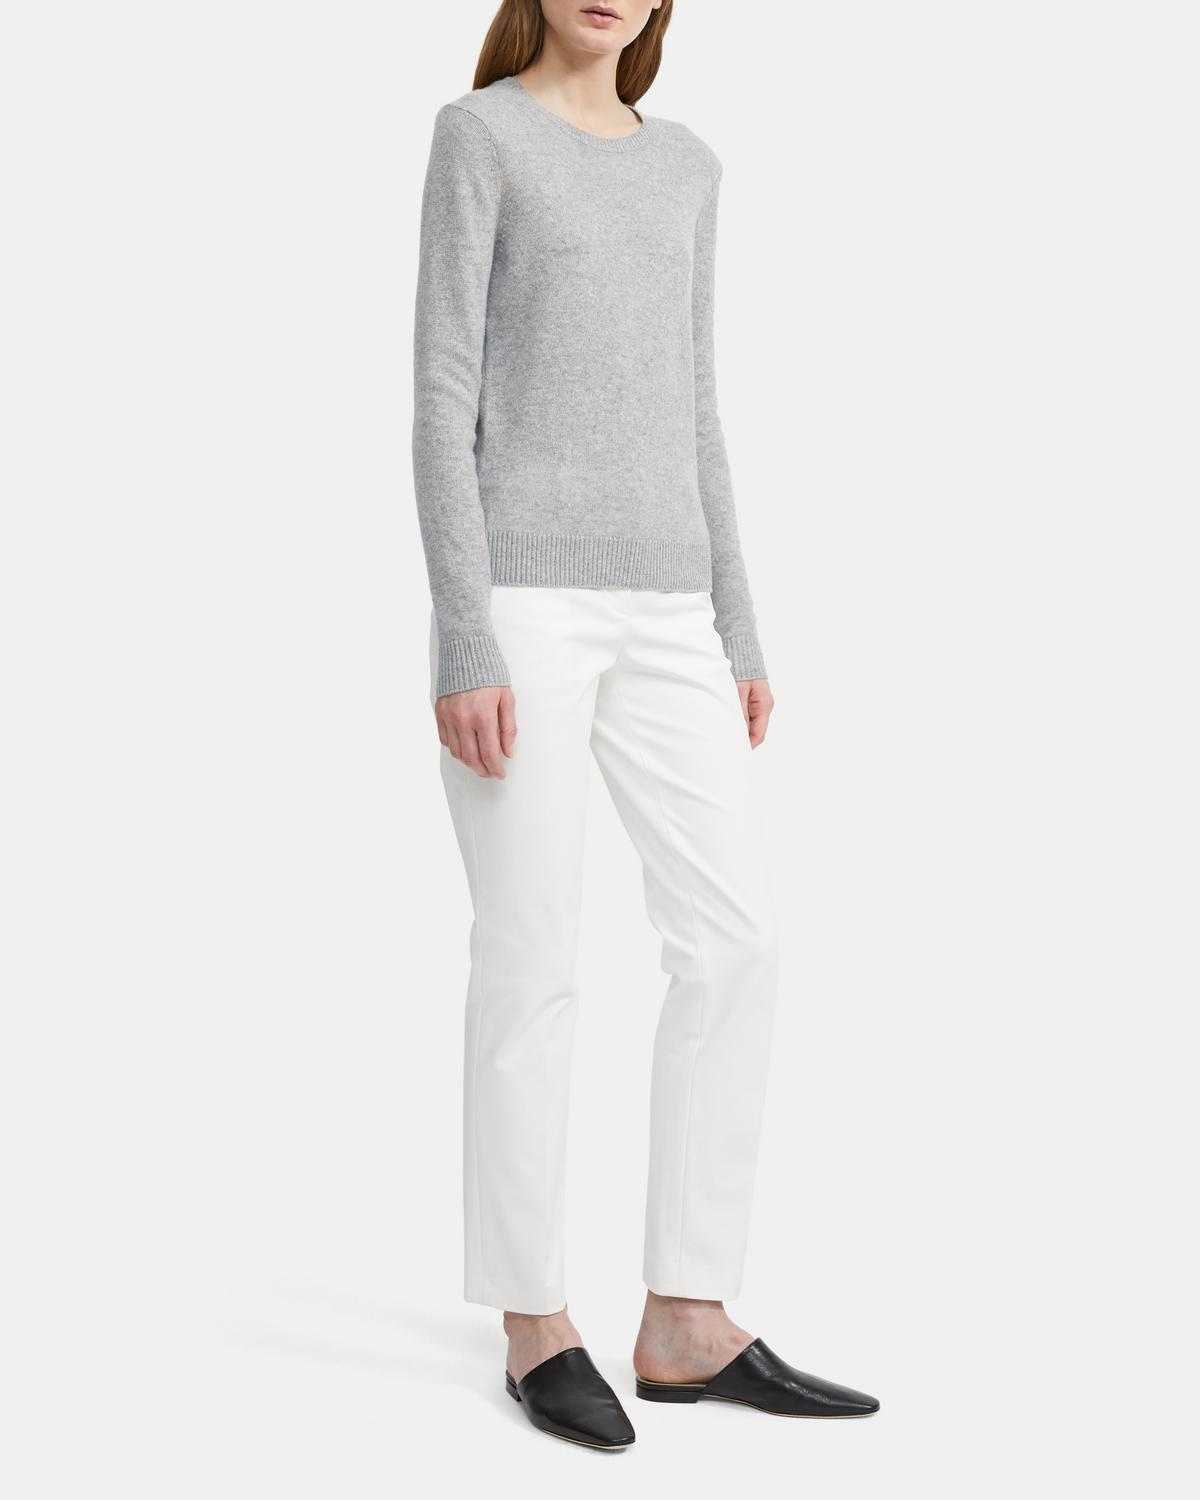 24eee4ea2d Theory. Cashmere Crewneck Pullover 0 - click to view larger image